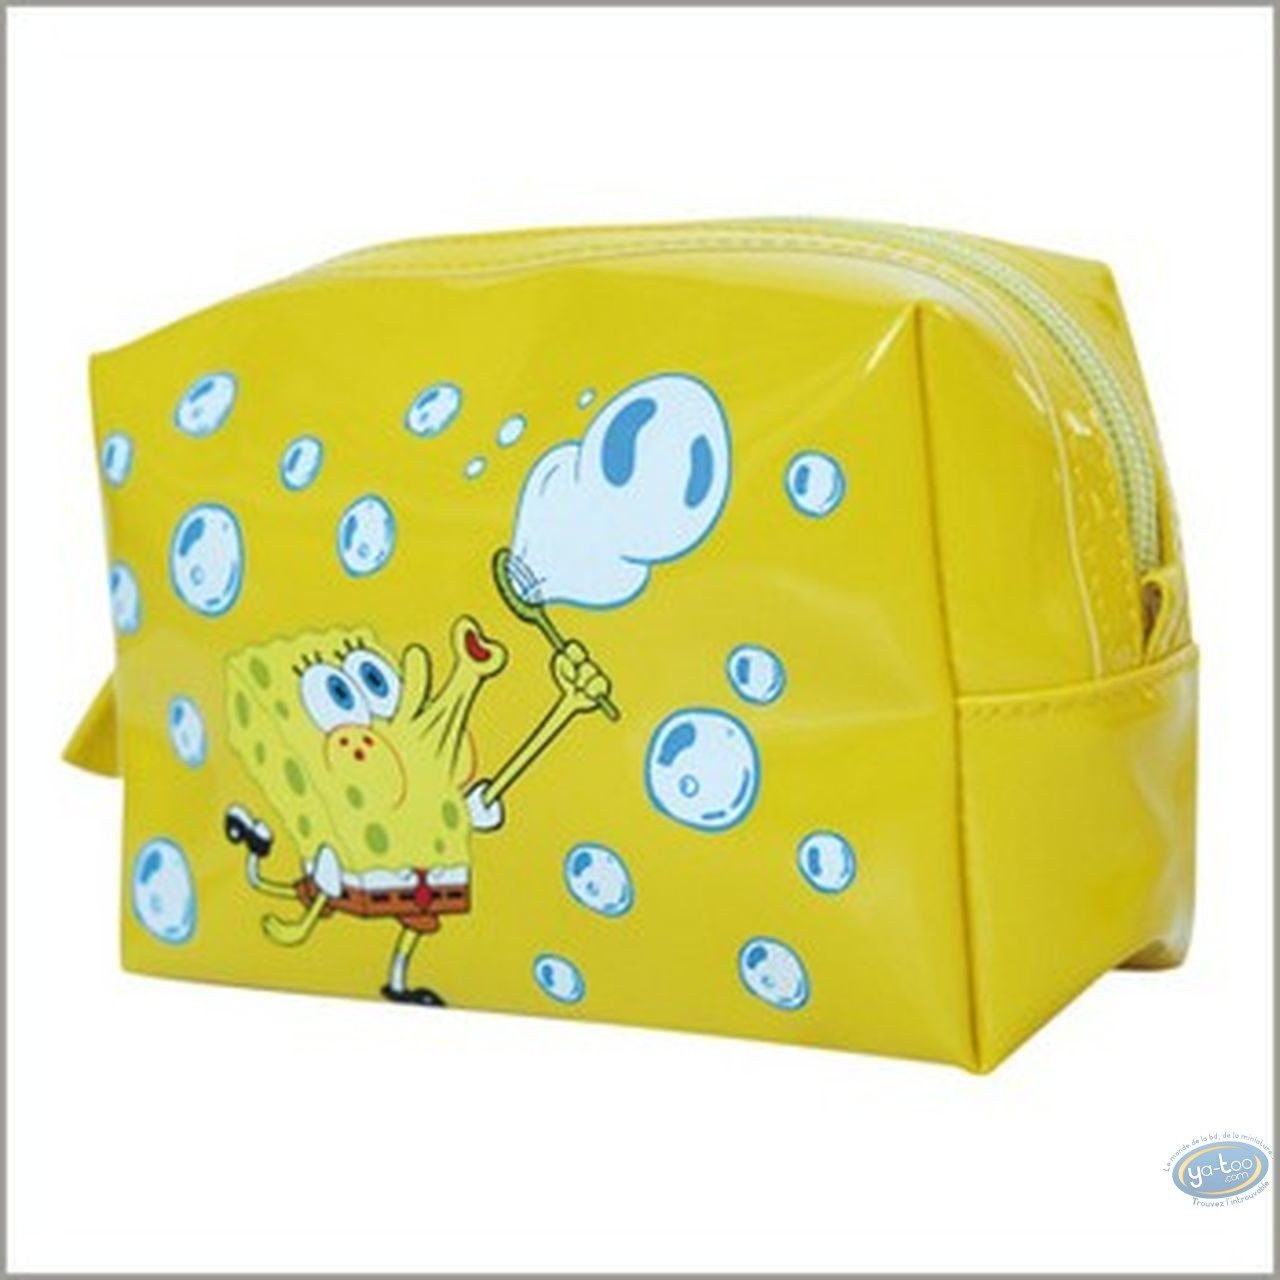 Luggage, Sponge Bob : Small vinyl kit Sponge Bob